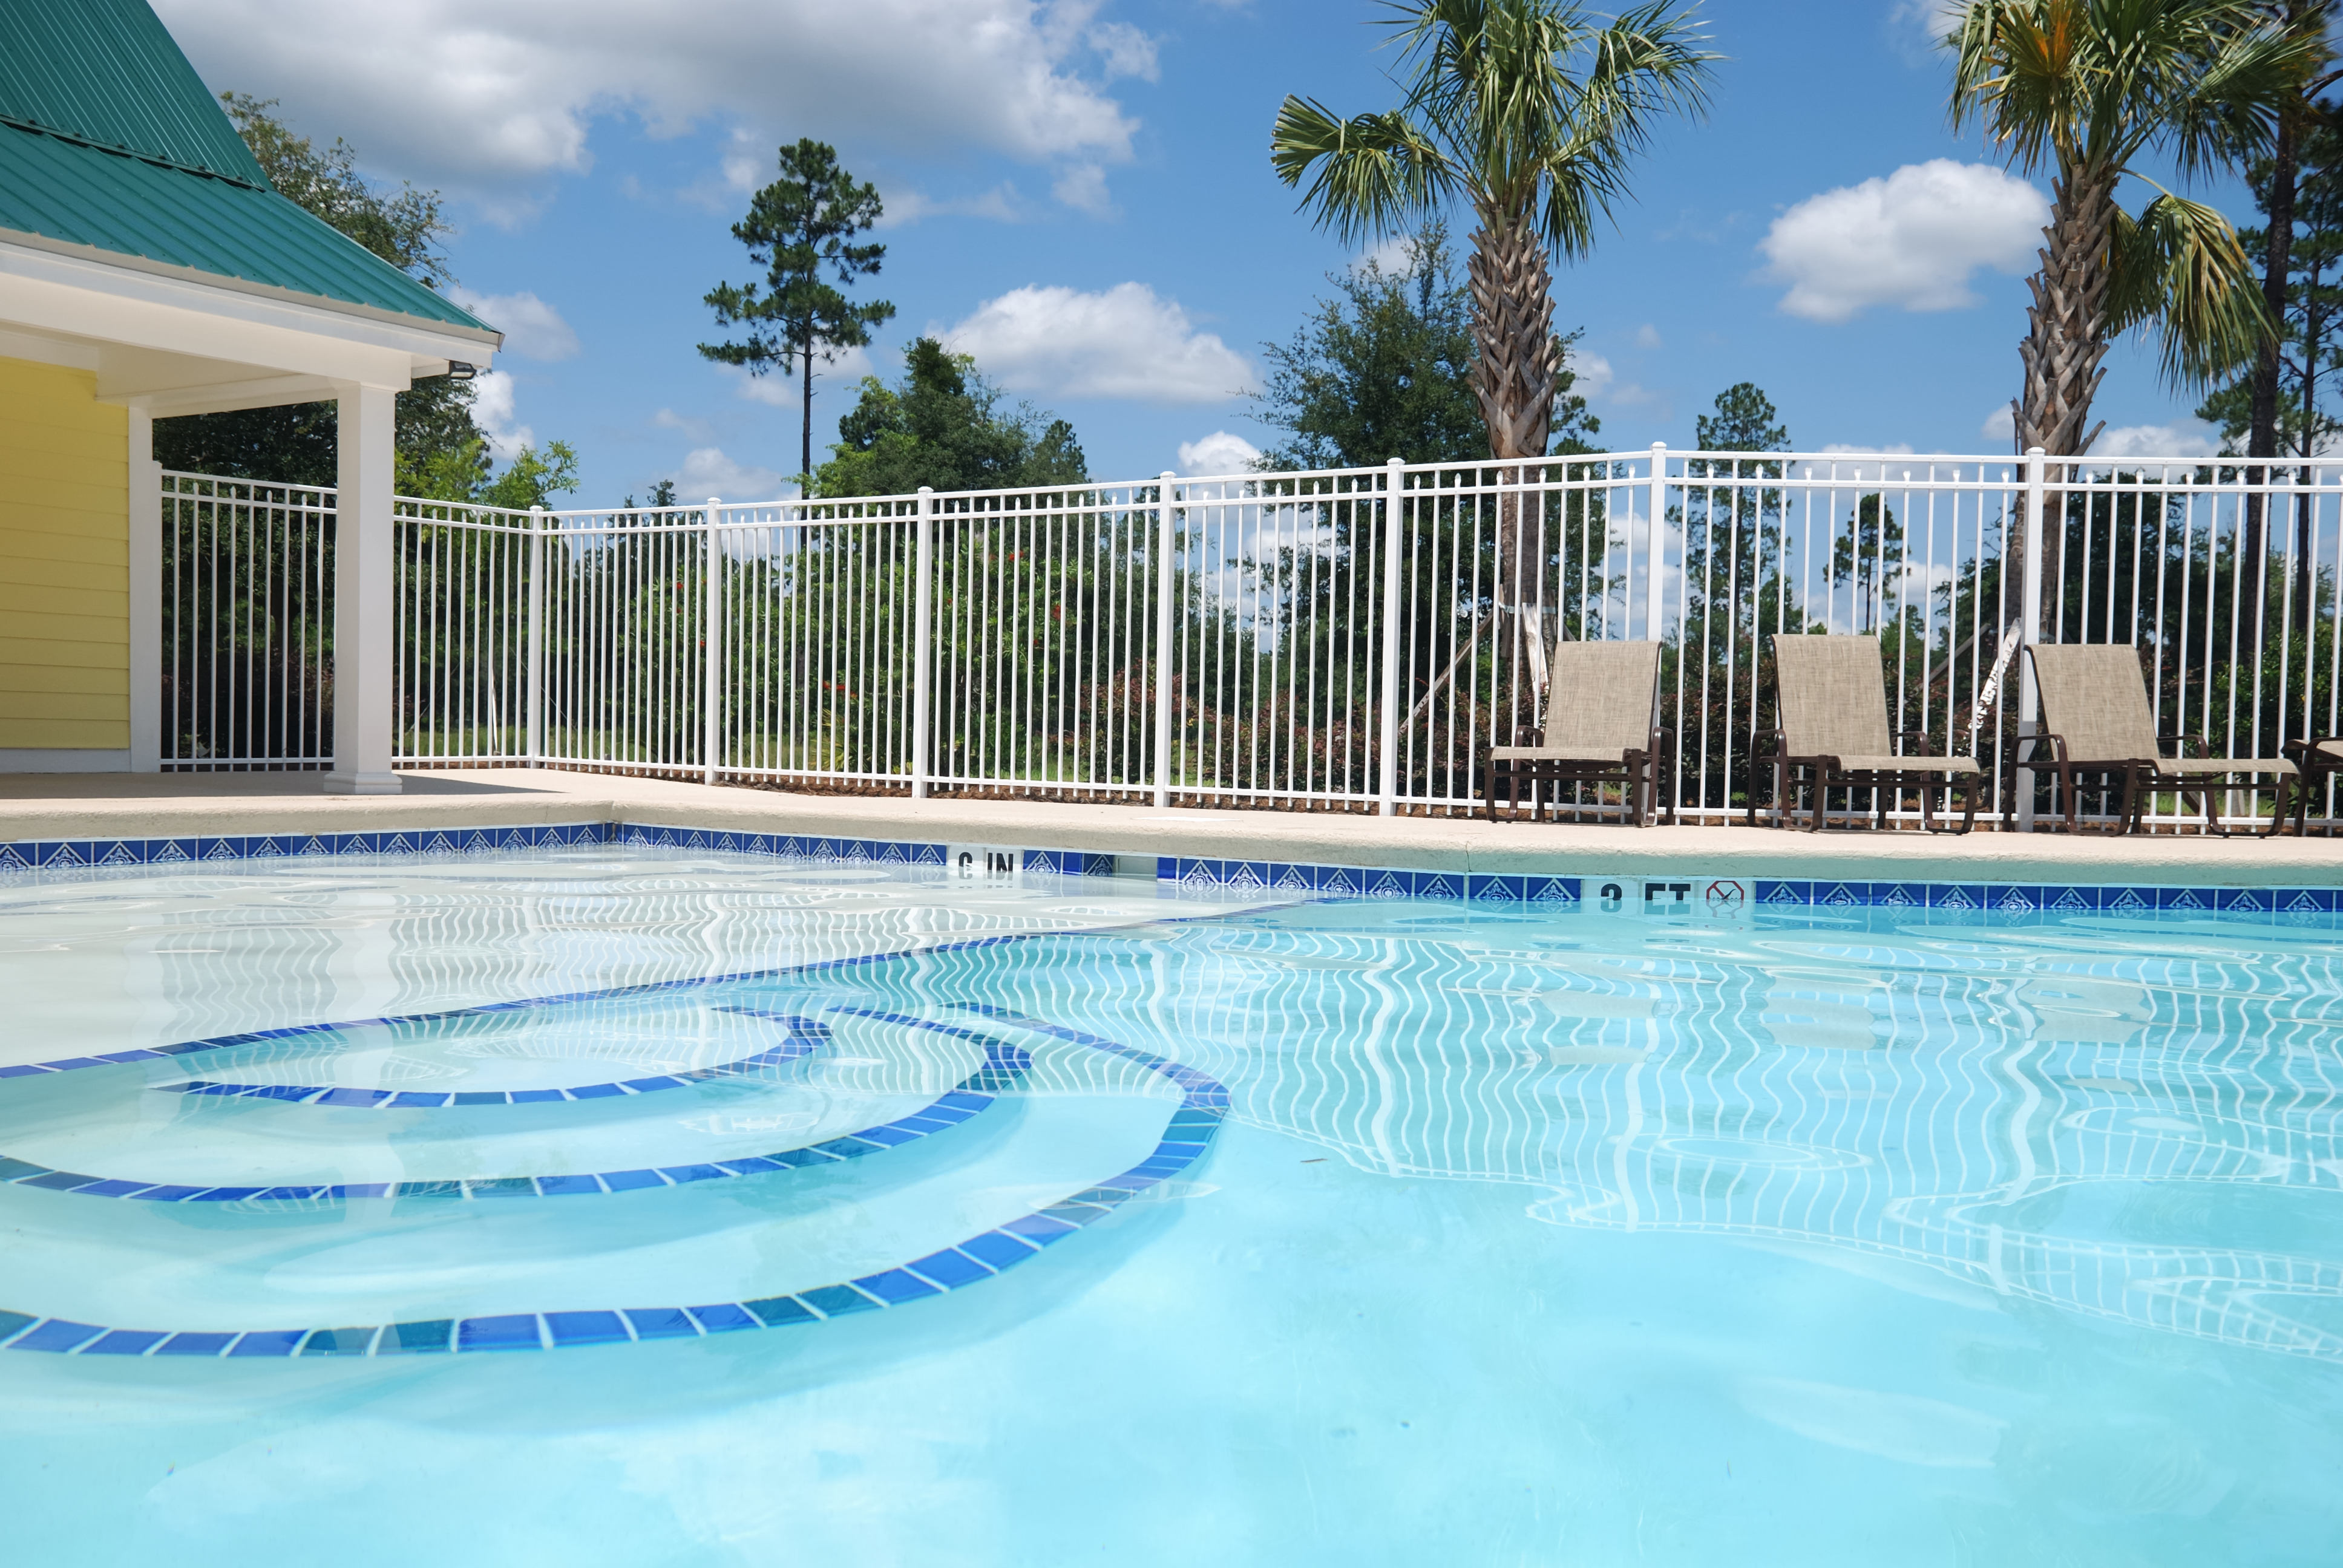 Texas Laws On Home Swimming Pools